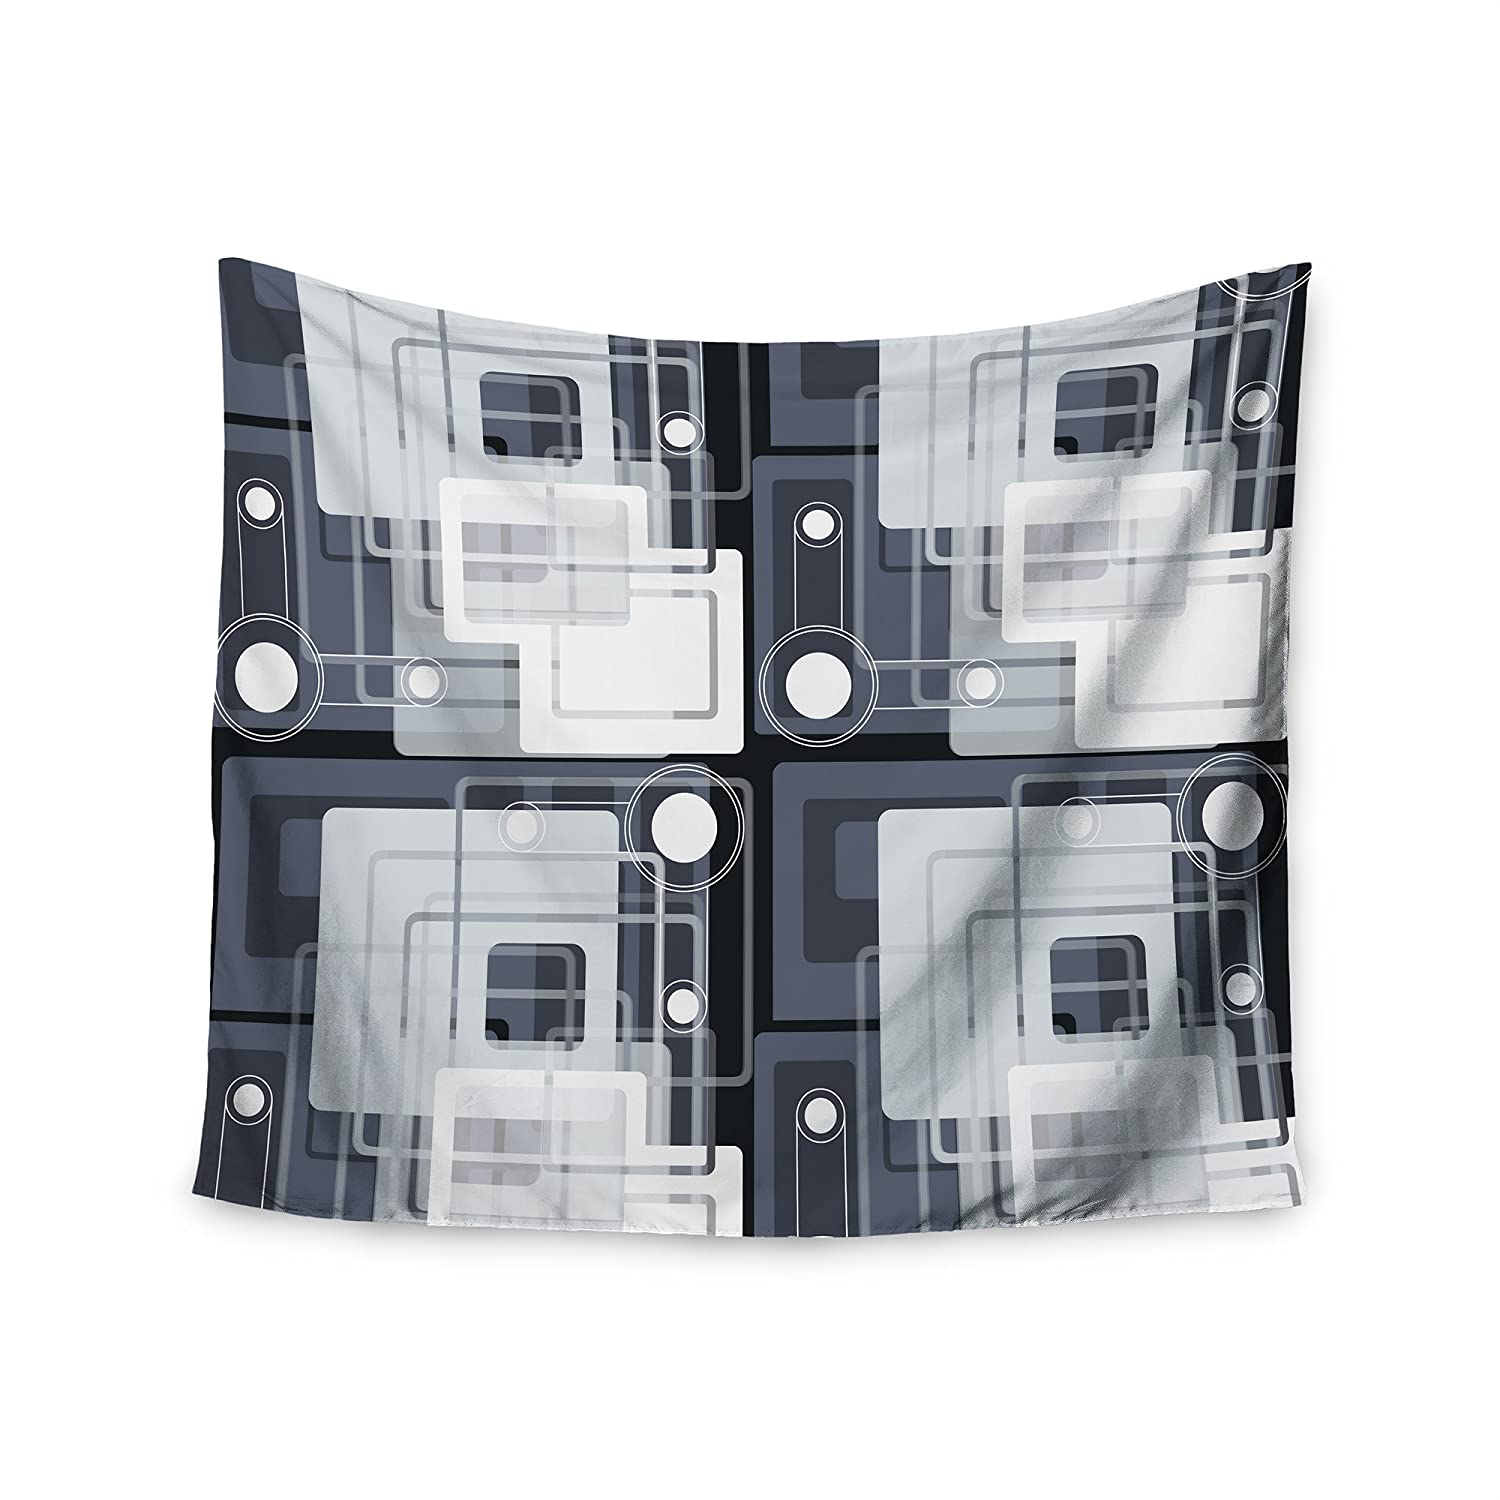 51 x 60 Wall Tapestry Kess InHouse Suzanne Carter Art Deco Gray White